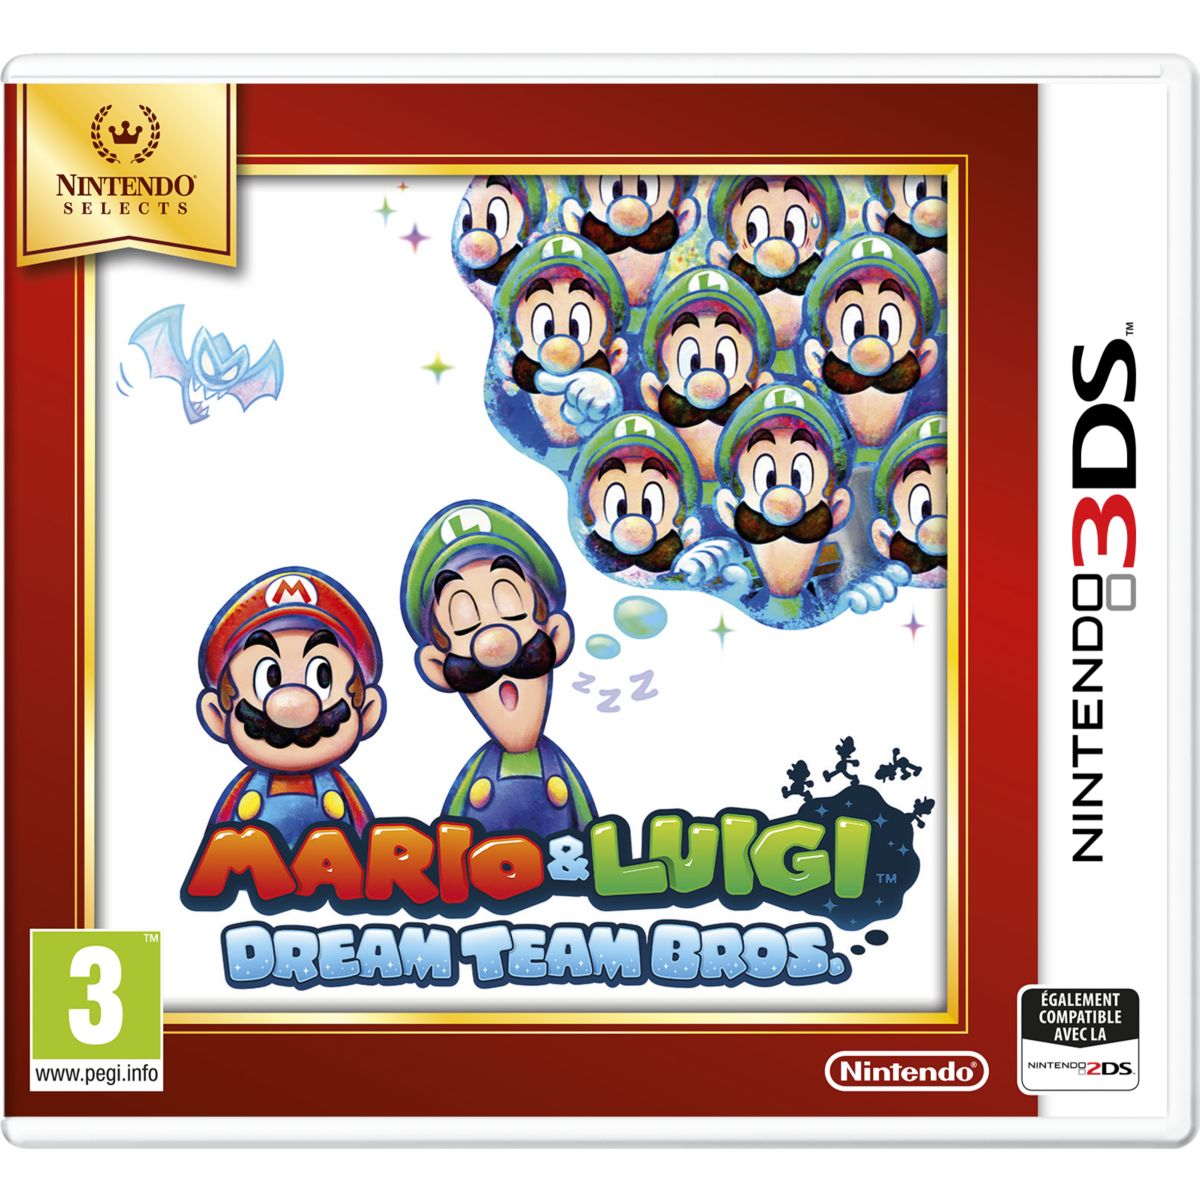 Jeu 3DS NINTENDO Mario & Luigi Dream Team Bros. Selects